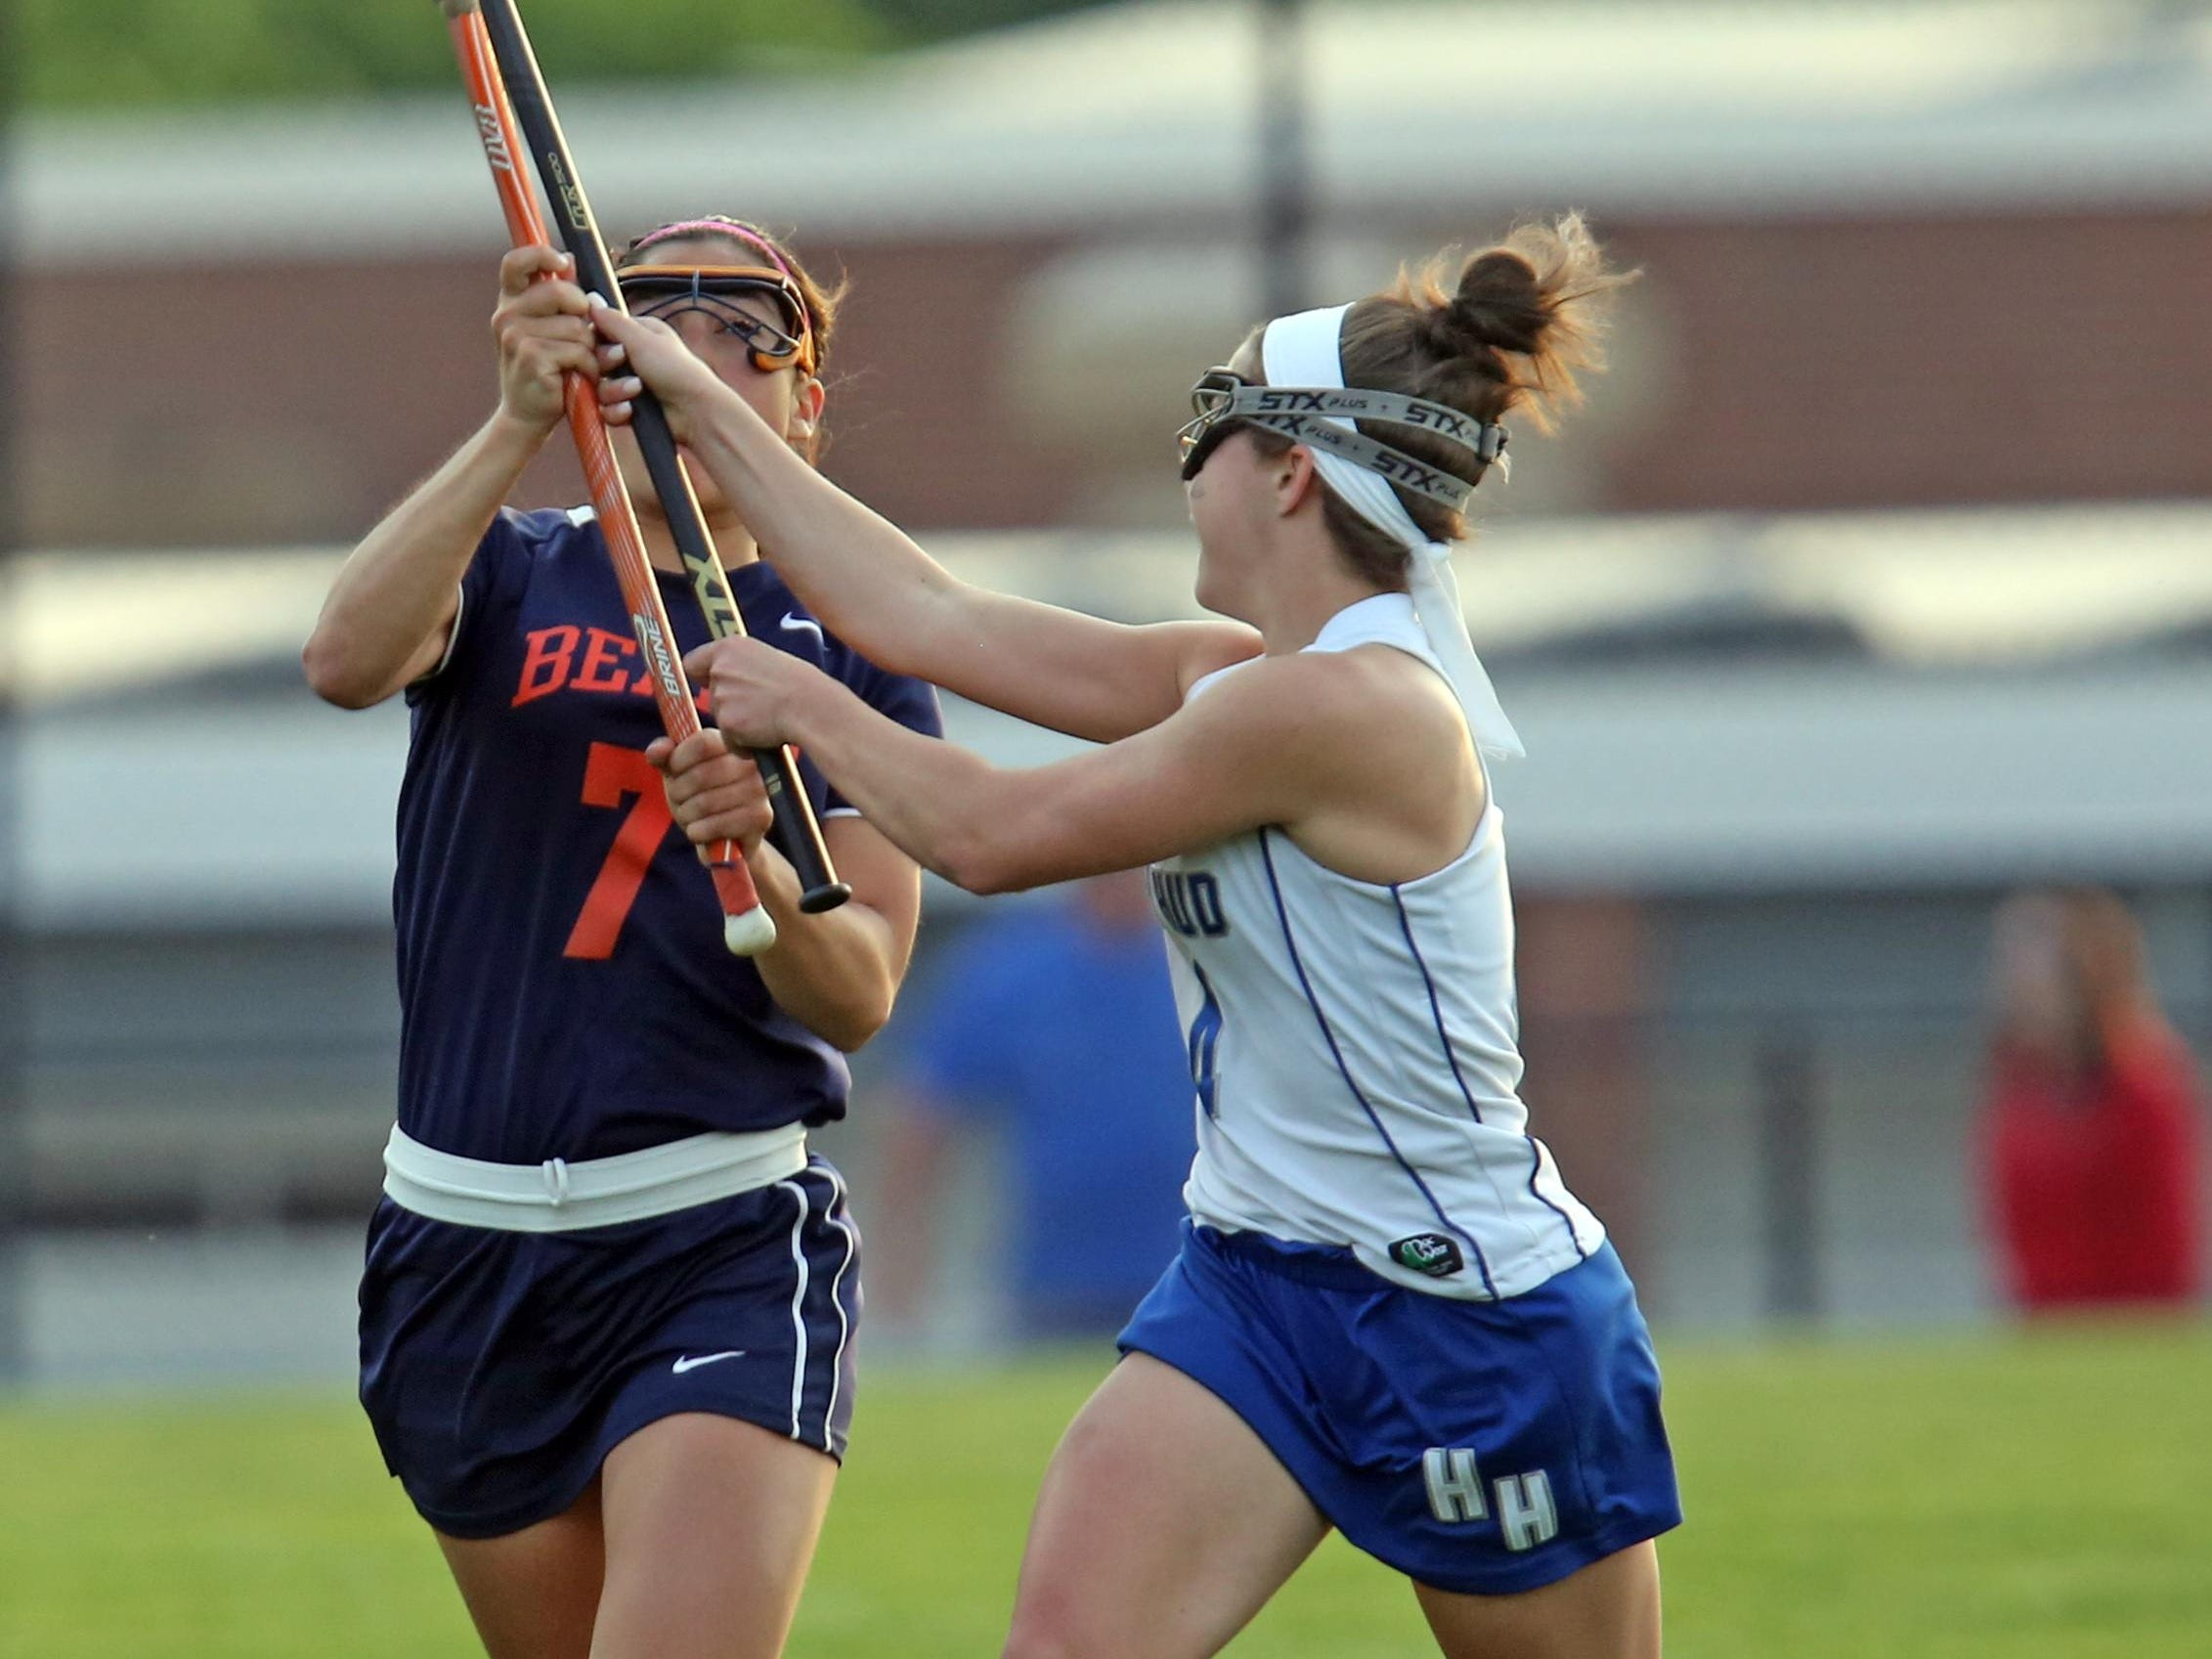 Hendrick Hudson's Montana Garrett (4) tries to steal the ball from Briarcliff's Lexi Grasso (7) during girls lacrosse game at Hendrick Hudson High School in Montrose May 11, 2016.